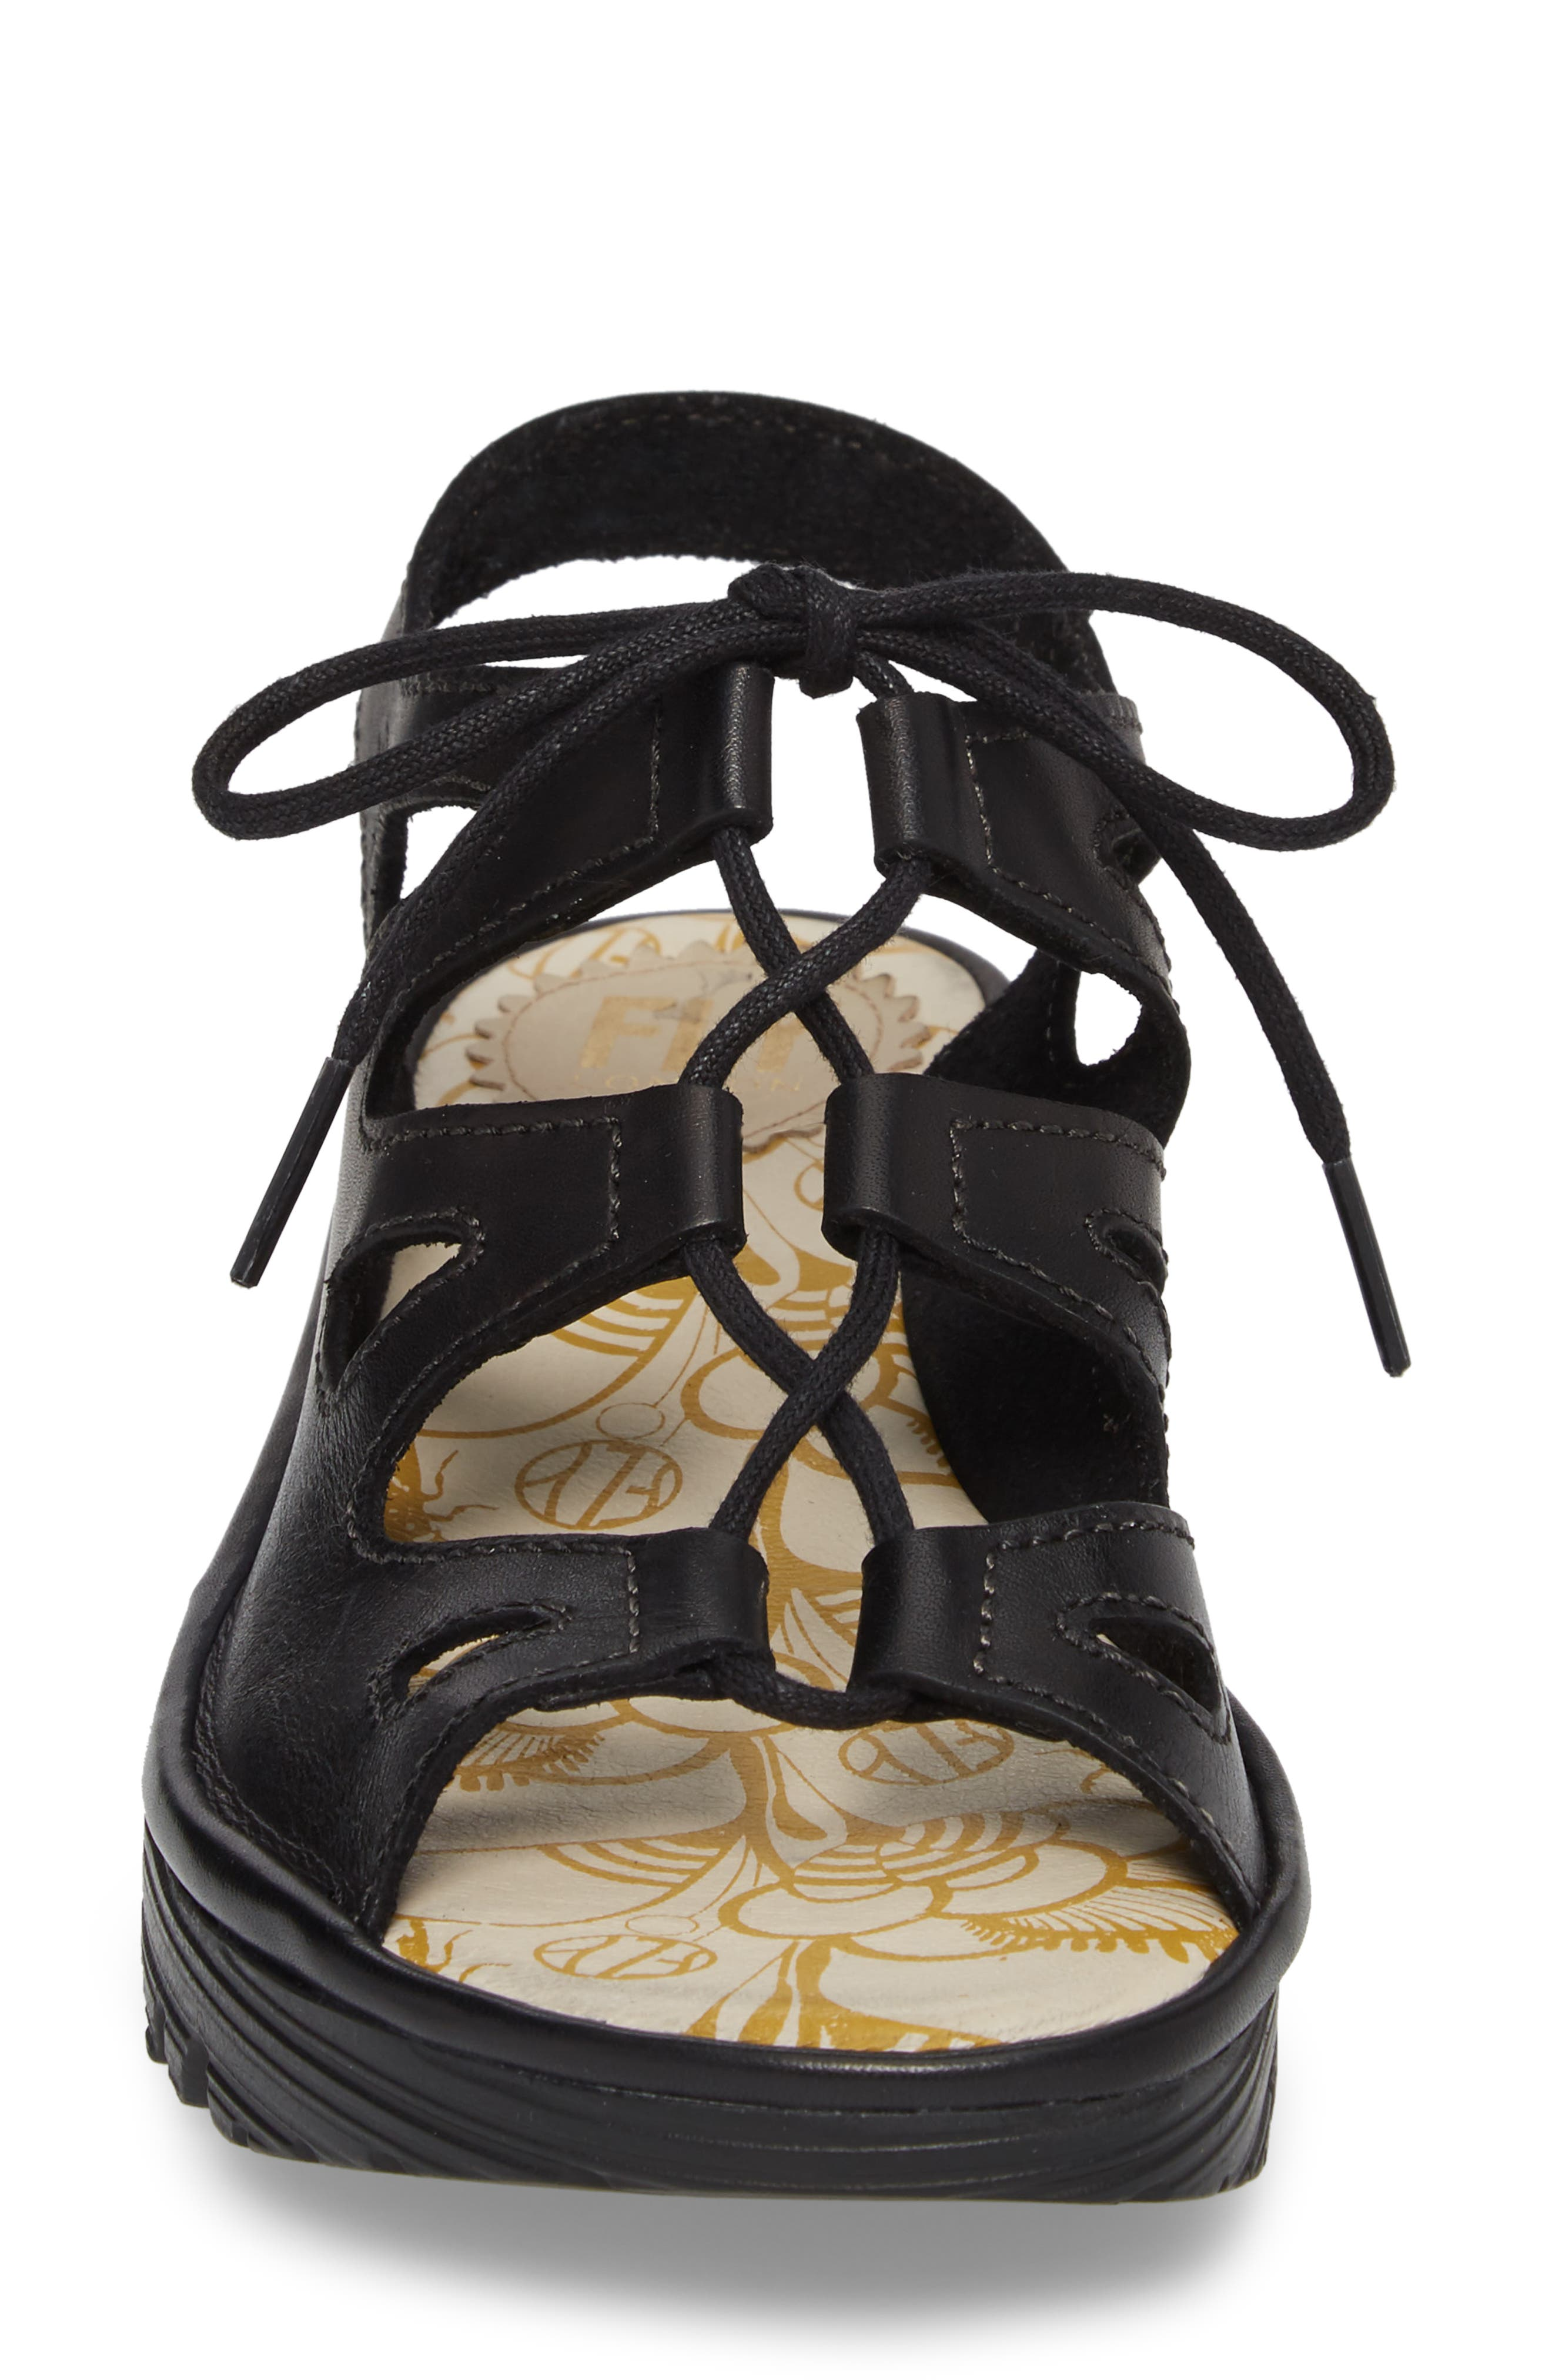 Exon Sandal,                             Alternate thumbnail 4, color,                             Black Colmar Leather